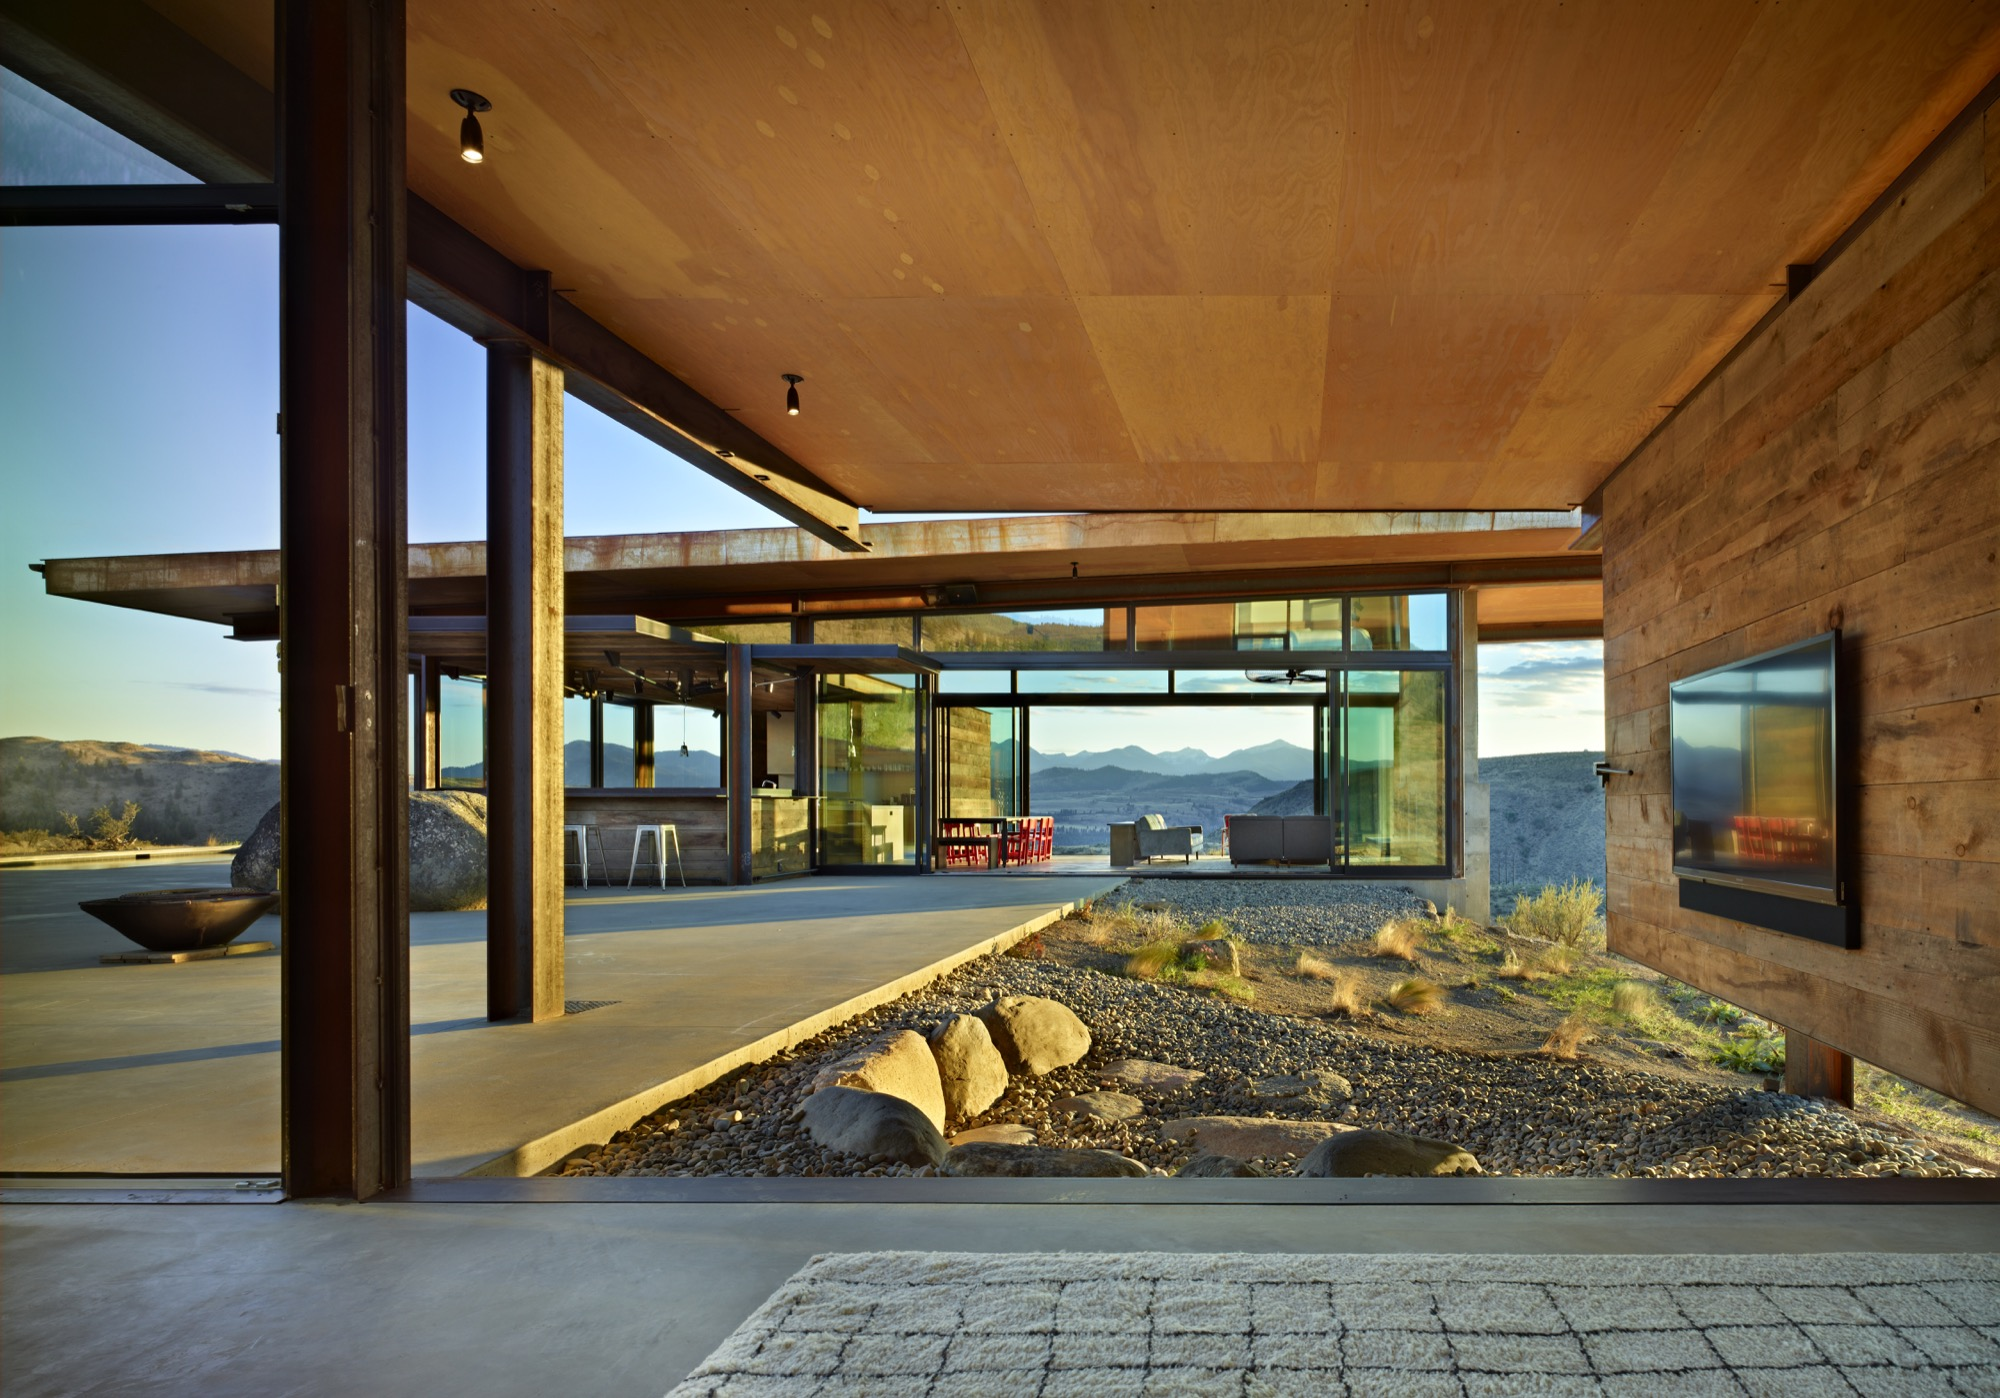 Studhorse Outlook by Olson Kundig Architects / Photo by Benjamin Benschneider